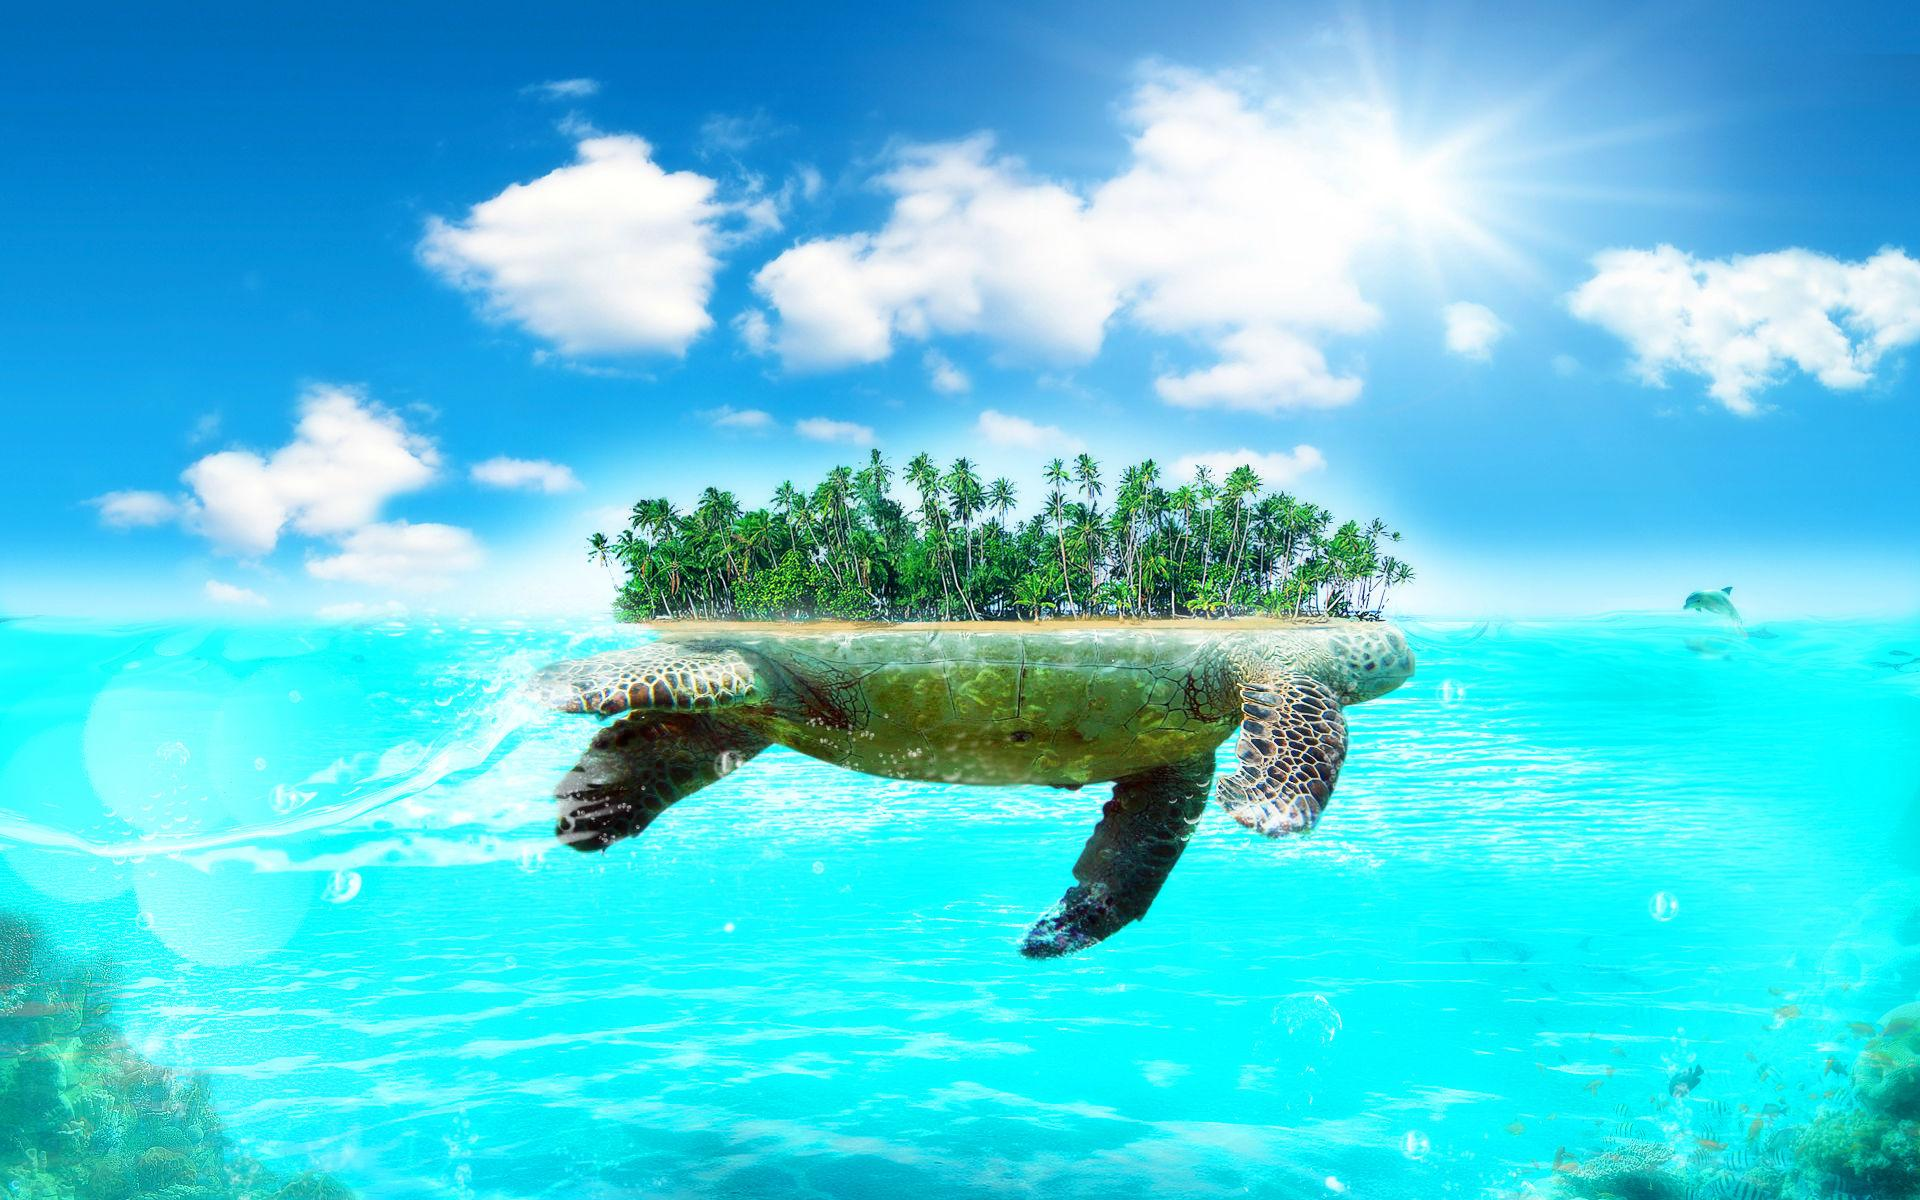 hd wallpapers turtle island beautiful large wallpaper desktop 1920 1920x1200